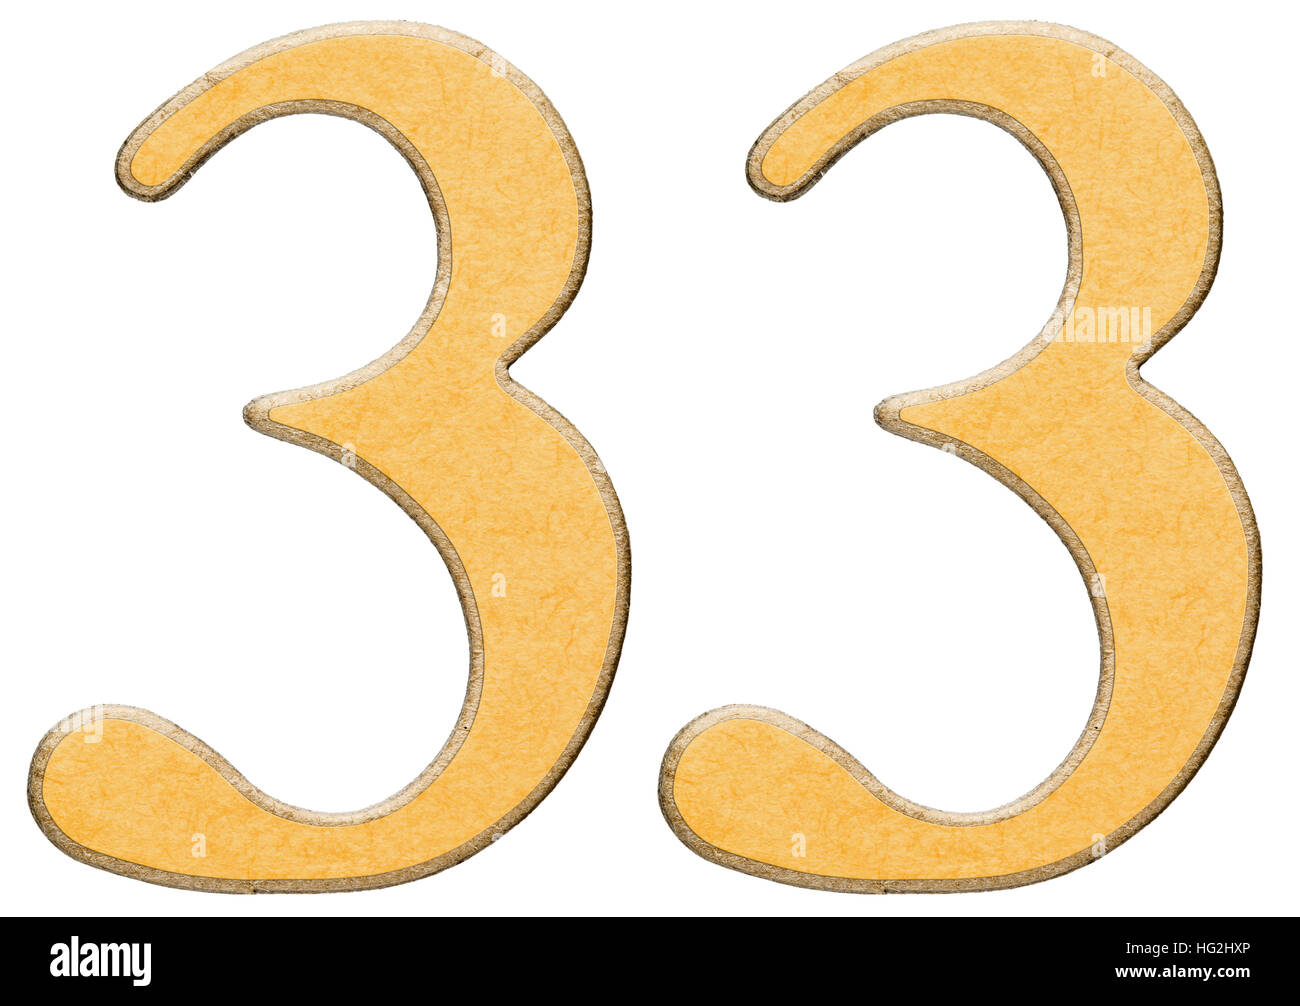 Number 33 free picture of the number thirty three - 33 Thirty Three Numeral Of Wood Combined With Yellow Insert Isolated On White Background